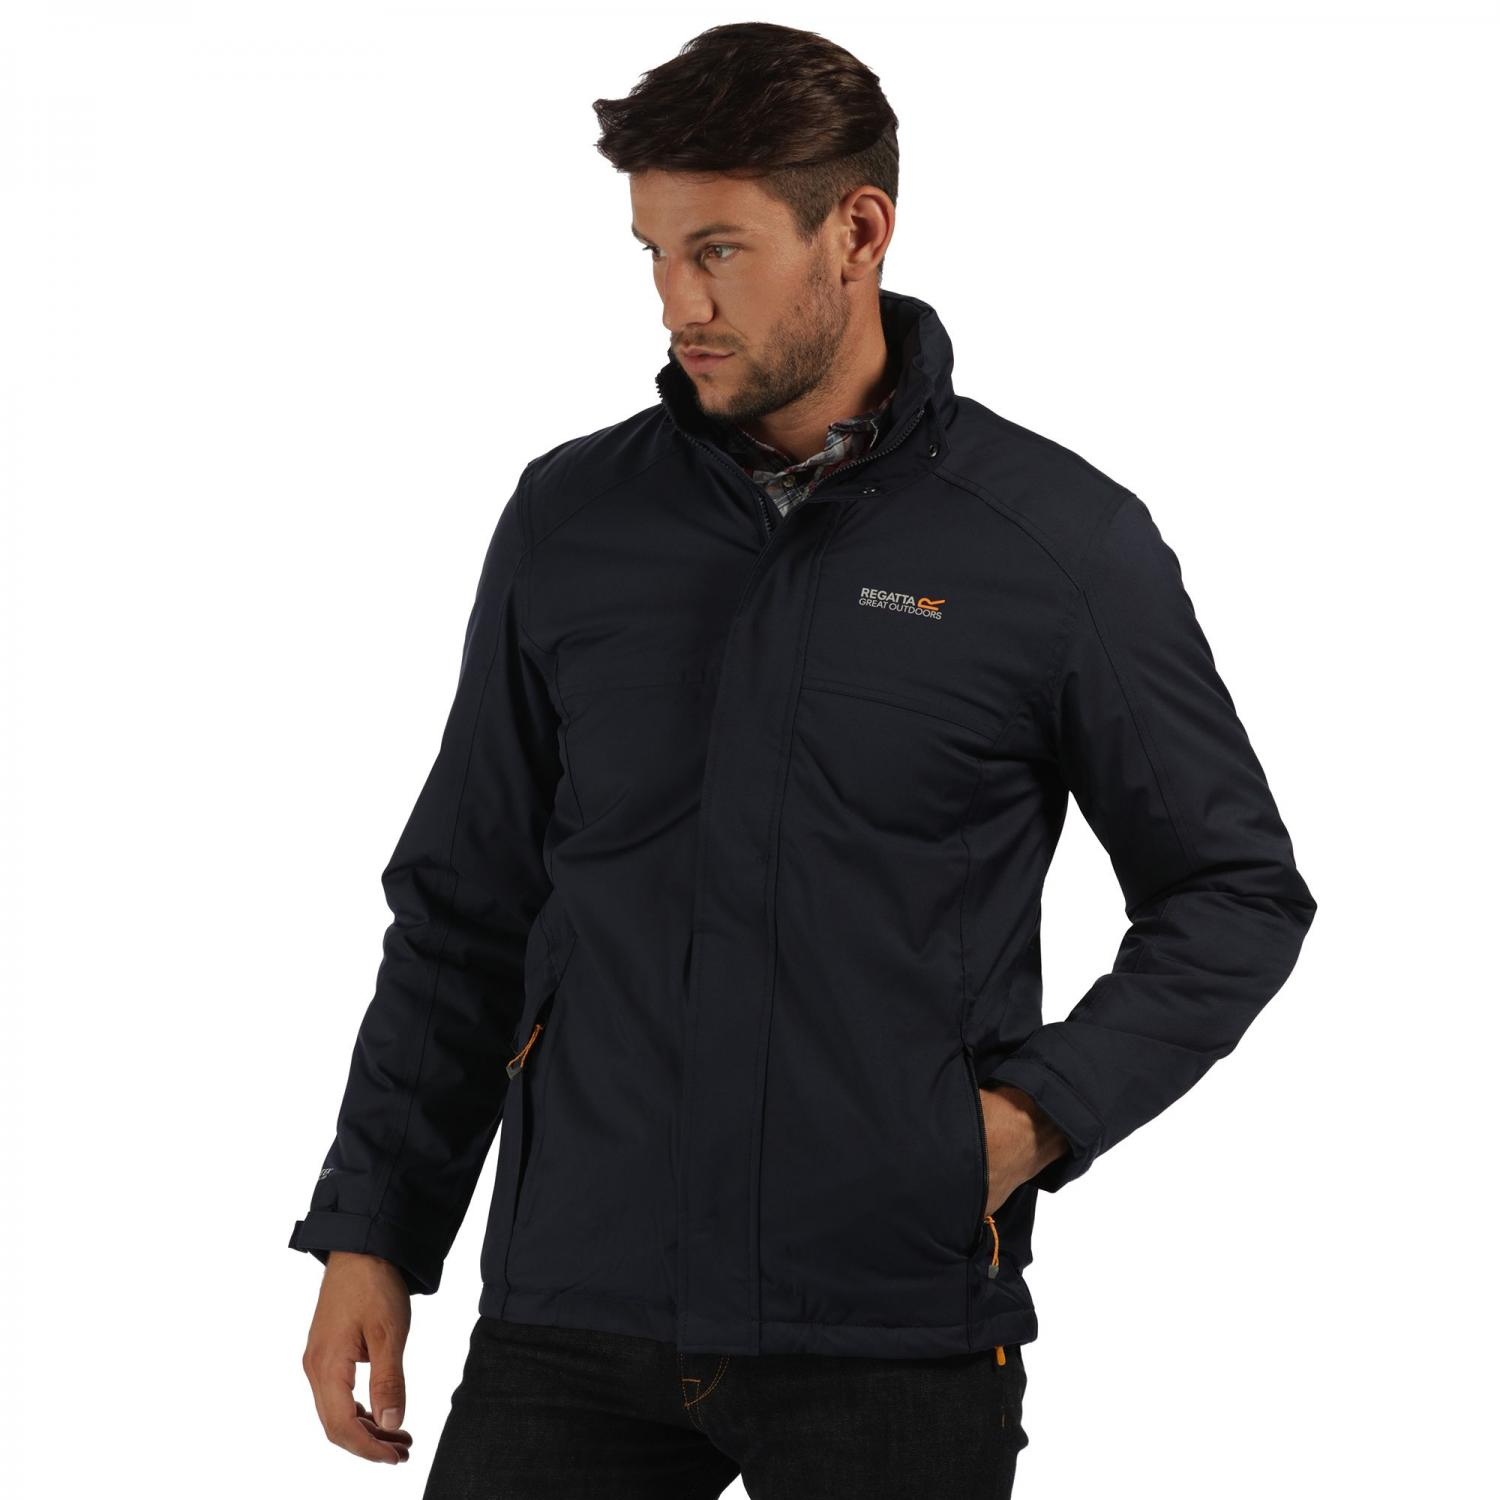 Hackber Jacket Navy